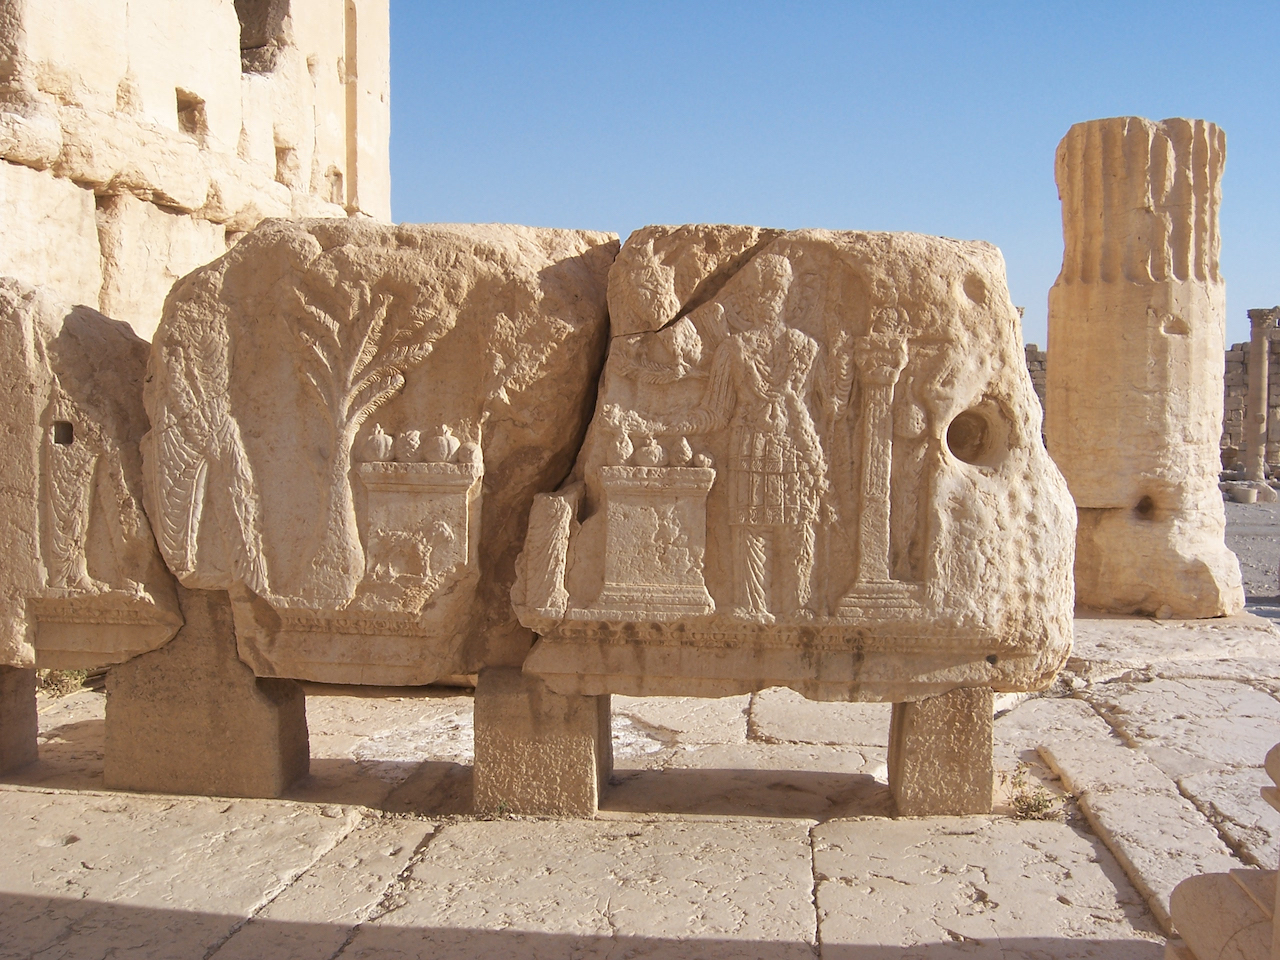 A Roman relief at Palmyra near the Temple of Baal (photo © Erik Hermans, 2008, via Wikimedia Commons)